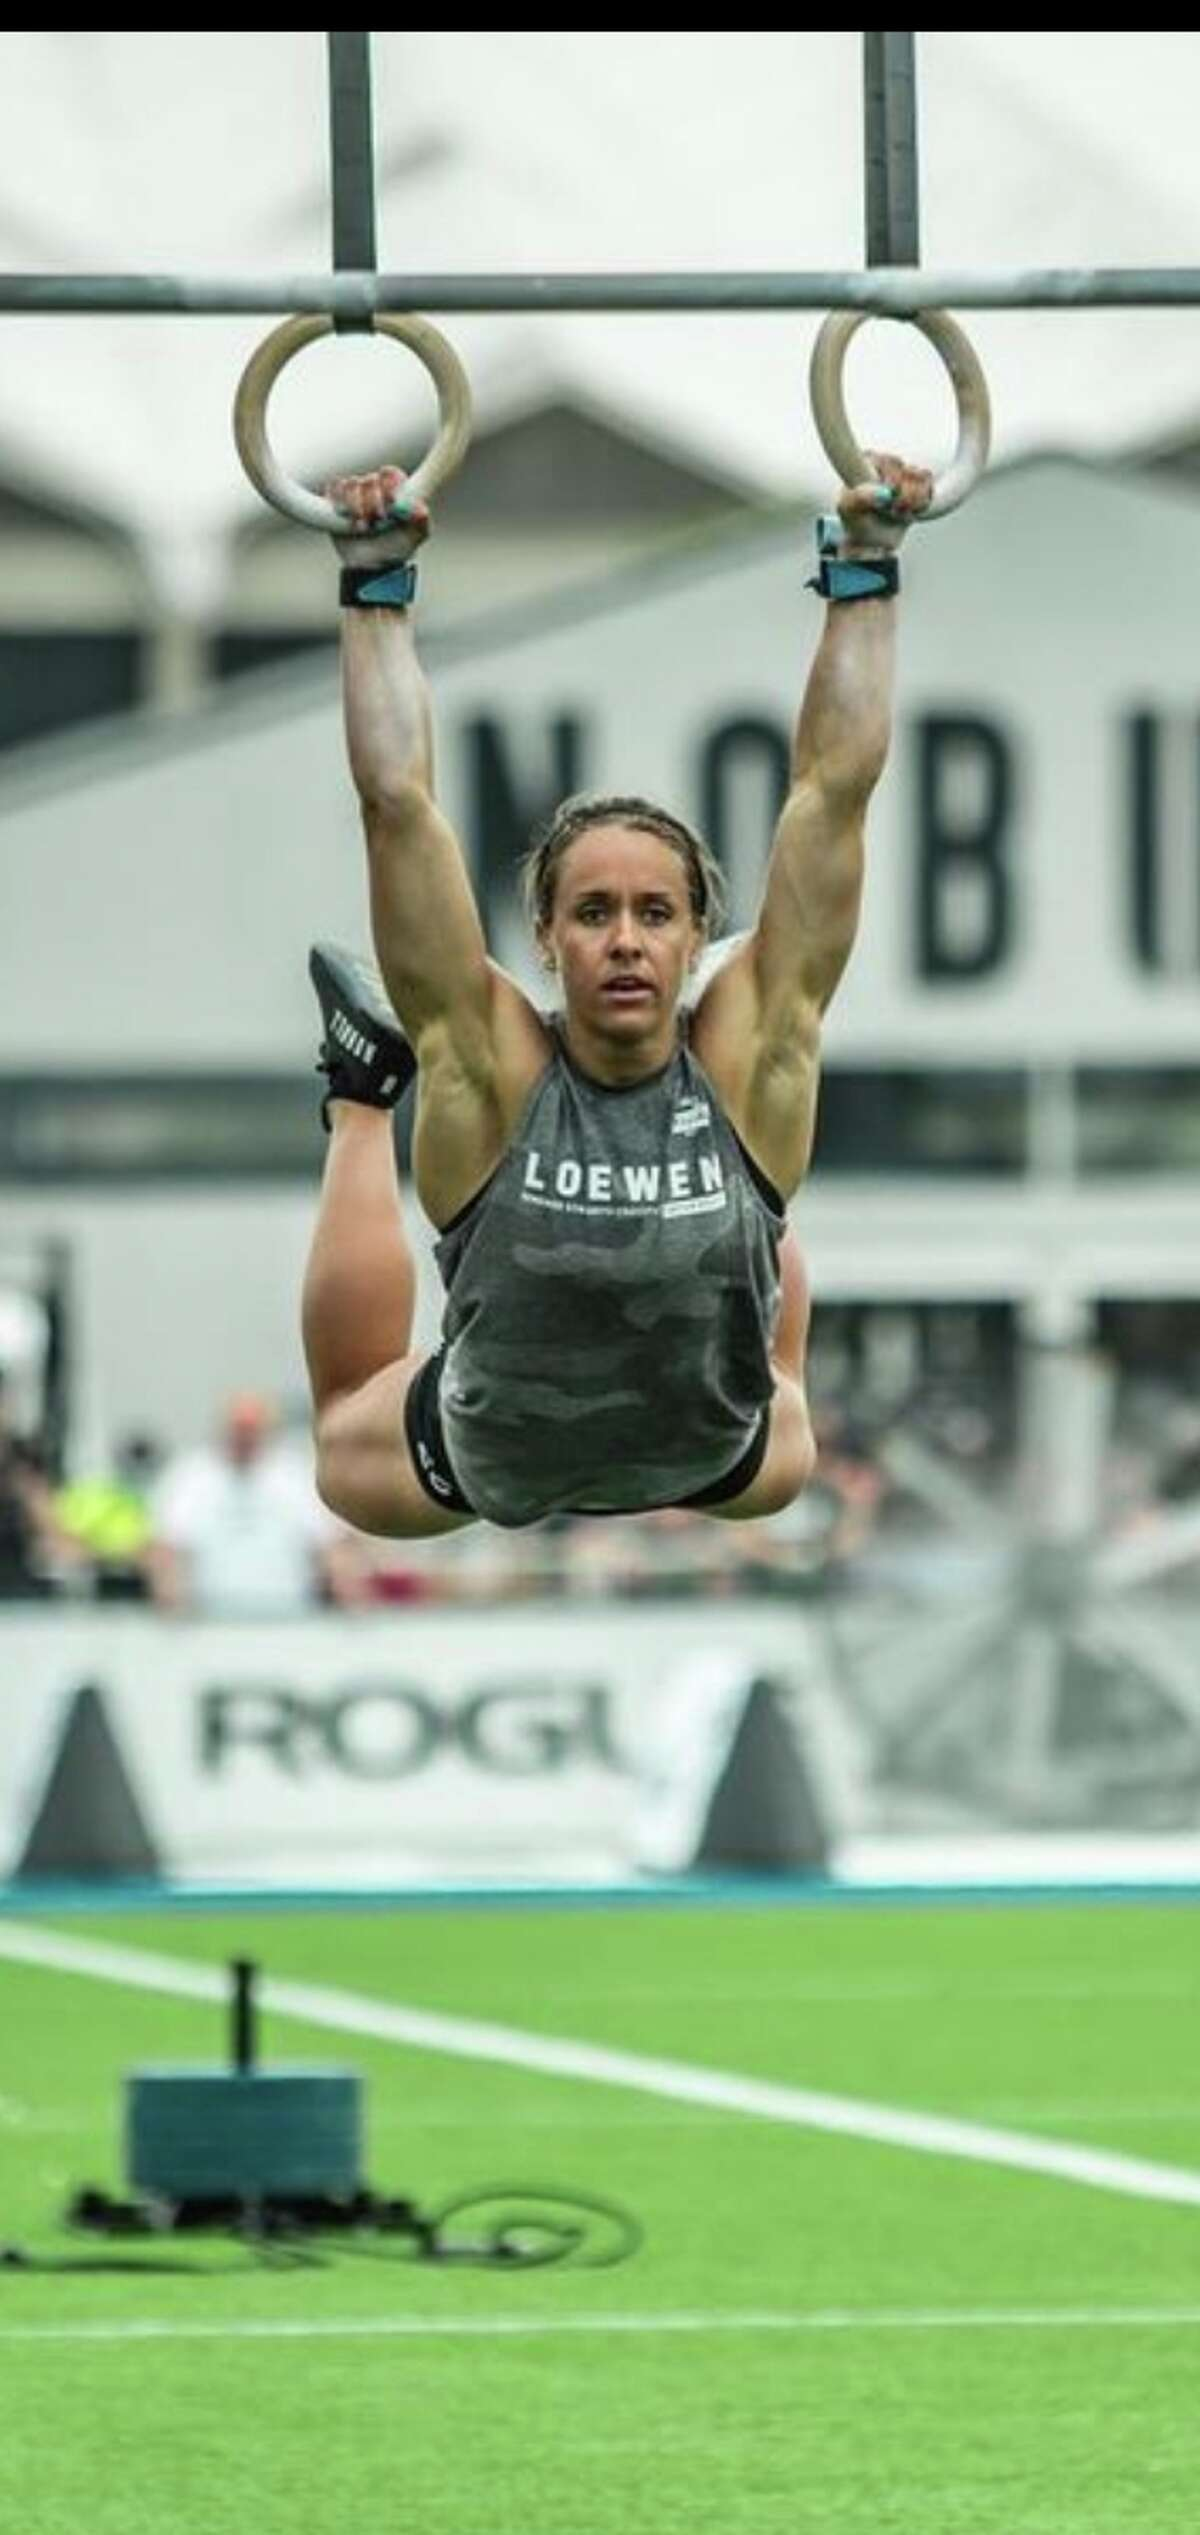 Midland's Arielle Loewen is shown competing at the NOBULL 2021 Crossfit Games.